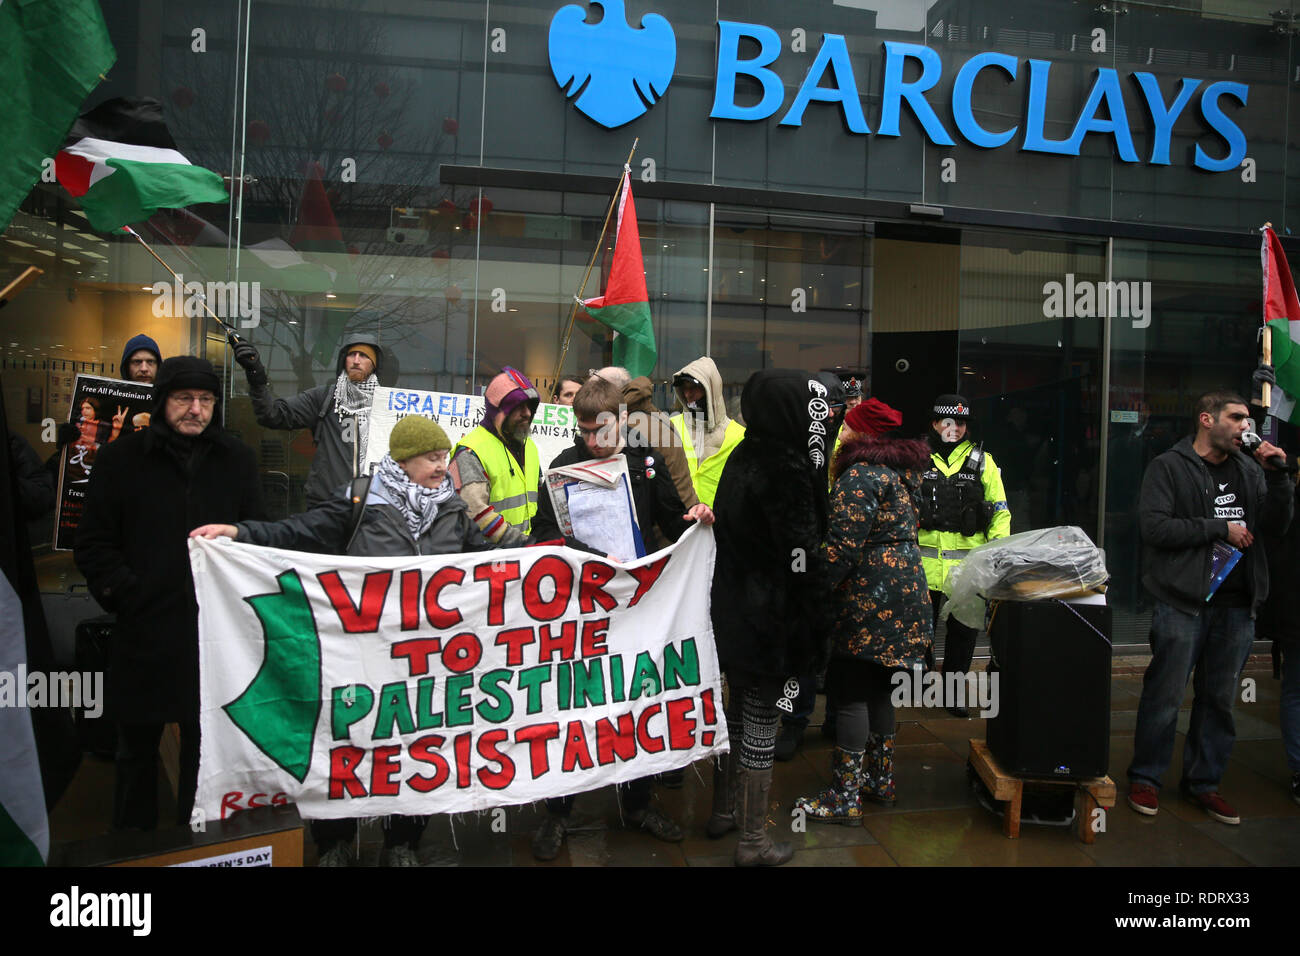 Manchester, UK. 19th January 2019. Pro Palestinian protesters outside Barclays bank during International week of action called by the Manchester boycott Israel group in solidarity with the Palestinian Prisoner Solidarity Network.  19th January 2019 (C)Barbara Cook/Alamy Live News Credit: Barbara Cook/Alamy Live News - Stock Image